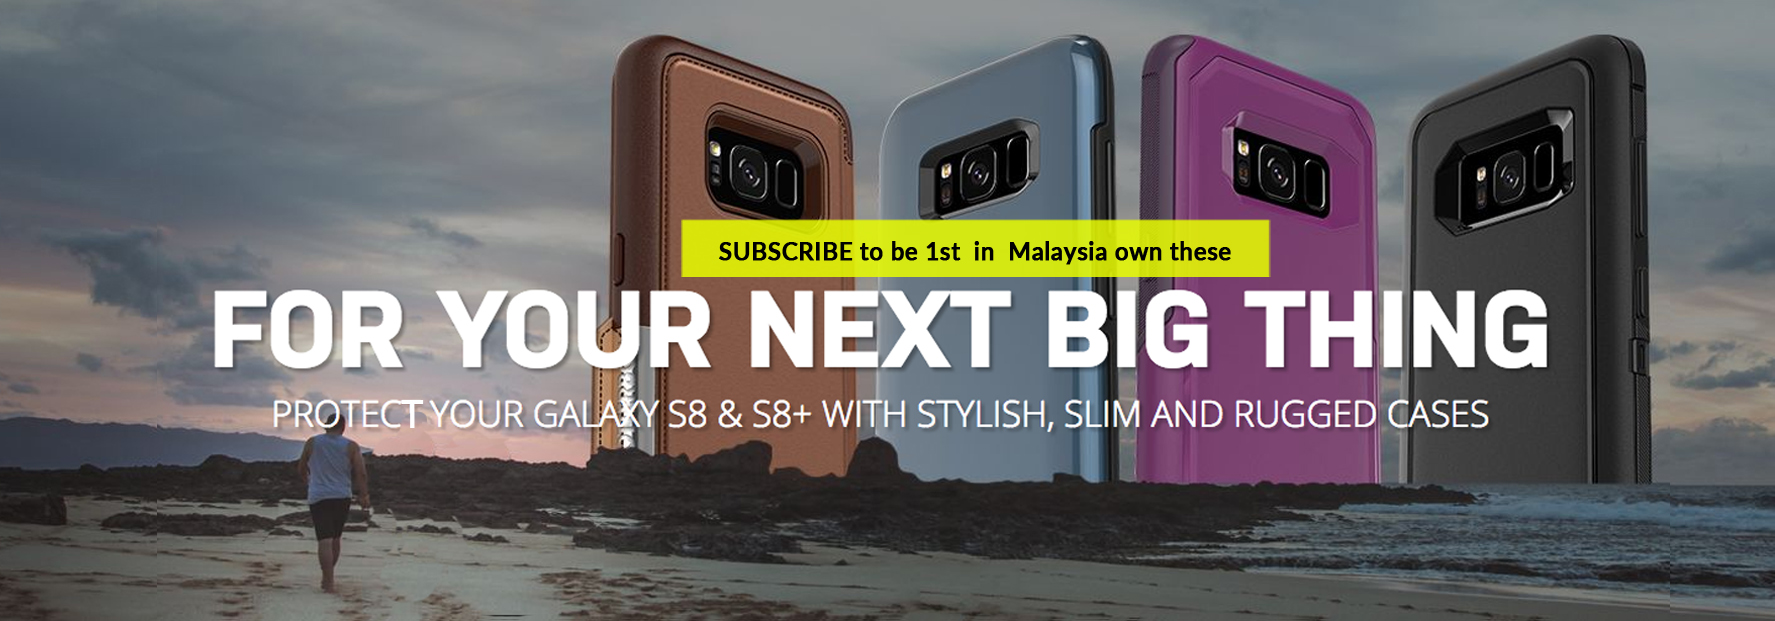 otterbox-symmetry-series-samsung-s8-s8-plus-malaysia-overview-set-subscriber-discounted-news